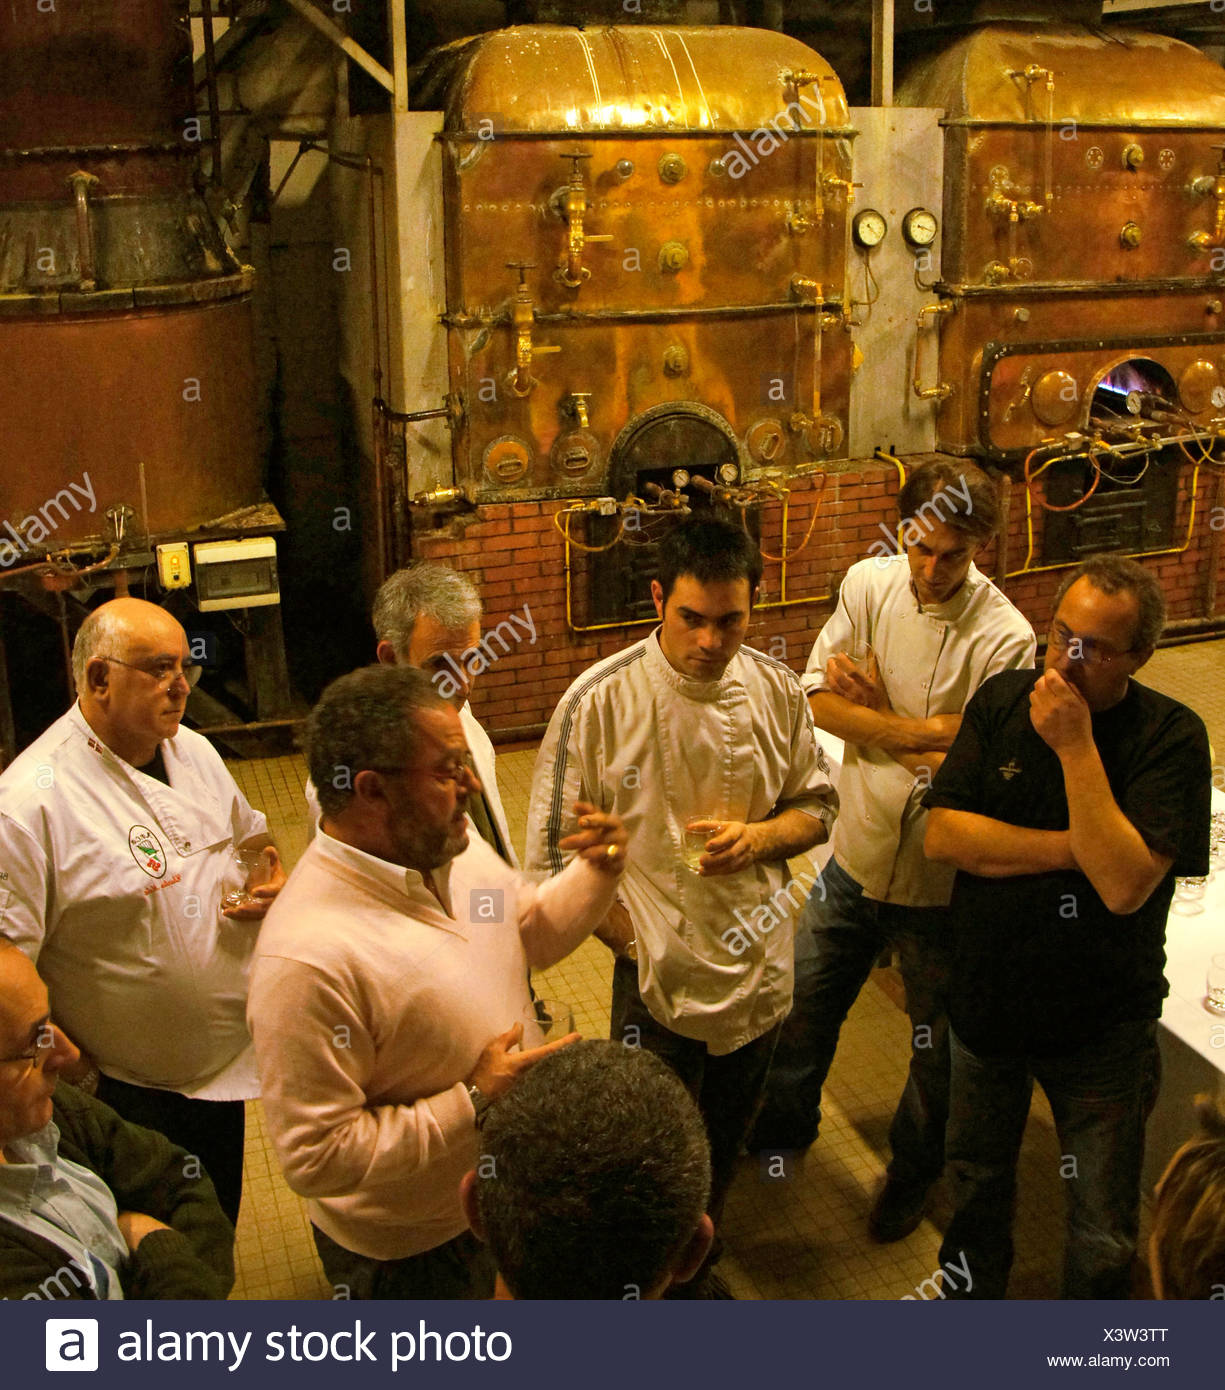 Visit at the Samalens armagnac estate, at Laujusan, Gers, Midi-Pyrenees, France - Stock Image